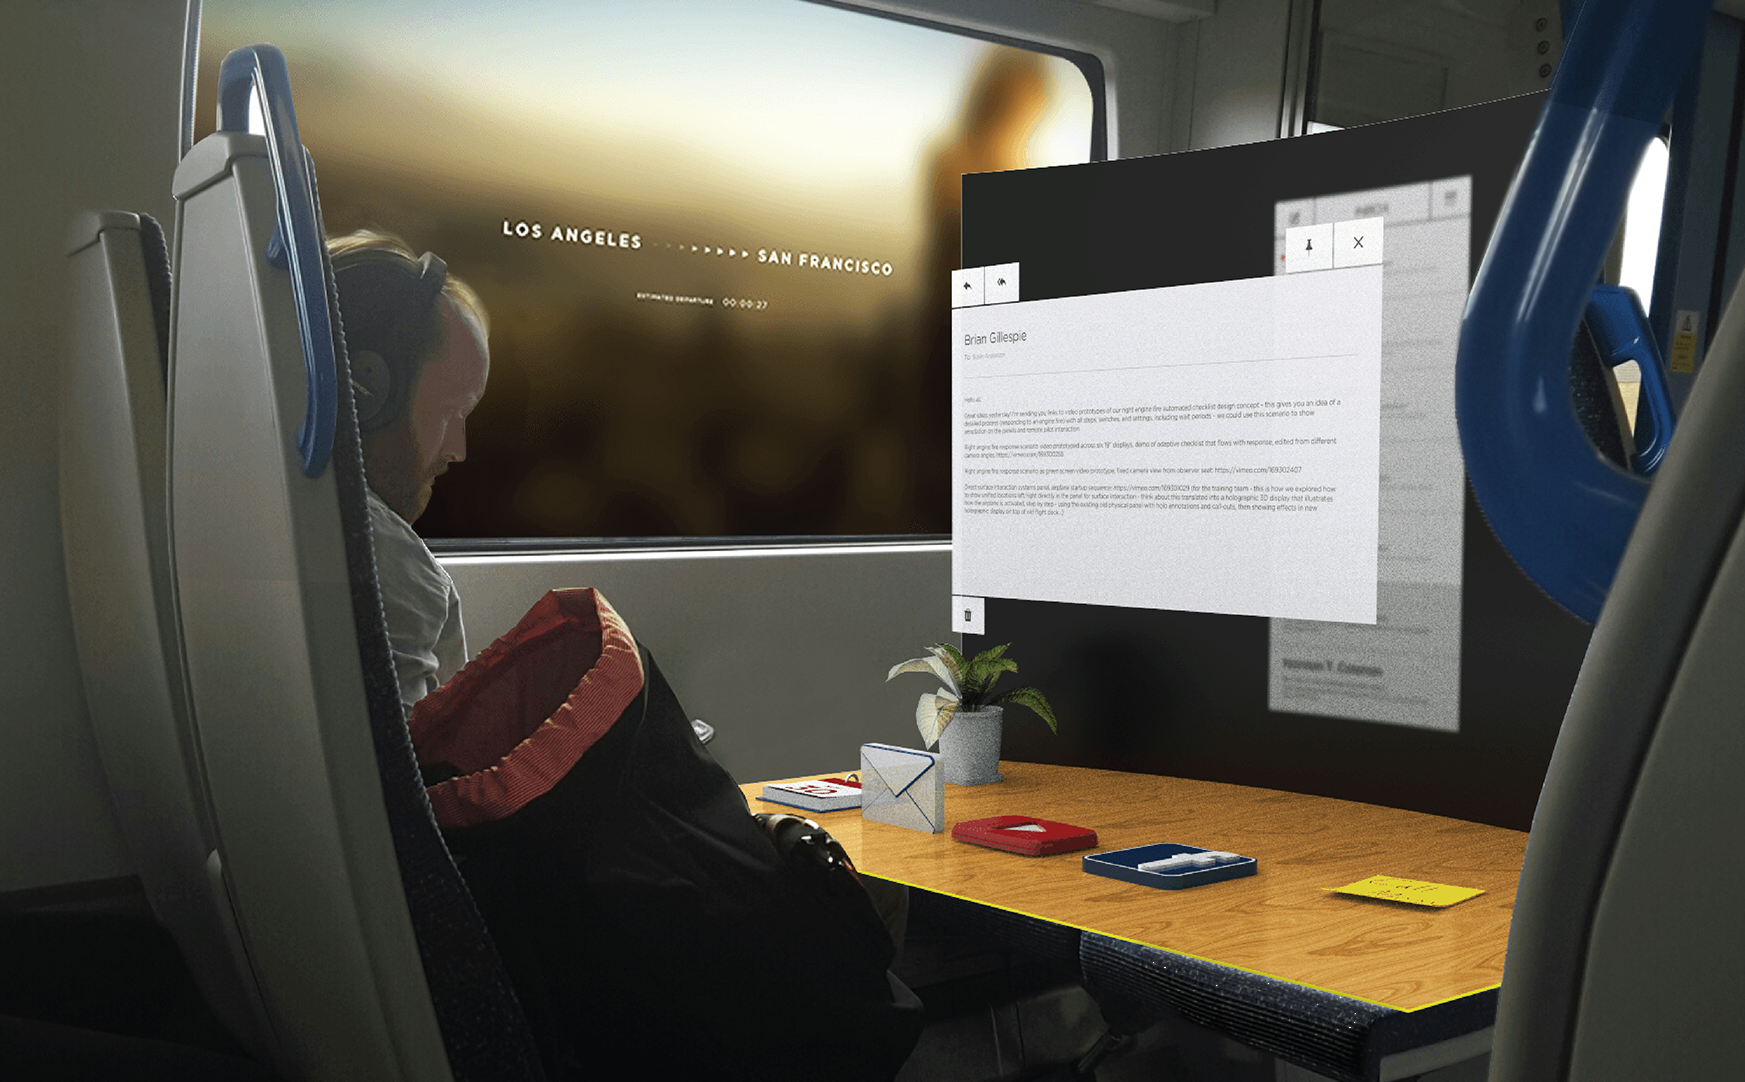 Early context shot of both interfaces in action. The personal AR interface makes use of Z-axis and depth of field to differentiate active and passive states between windows. A large opaque background is projected on the back of the table to reduce visual noise and increase privacy. This design would be dependent on a physical table existing for each user.